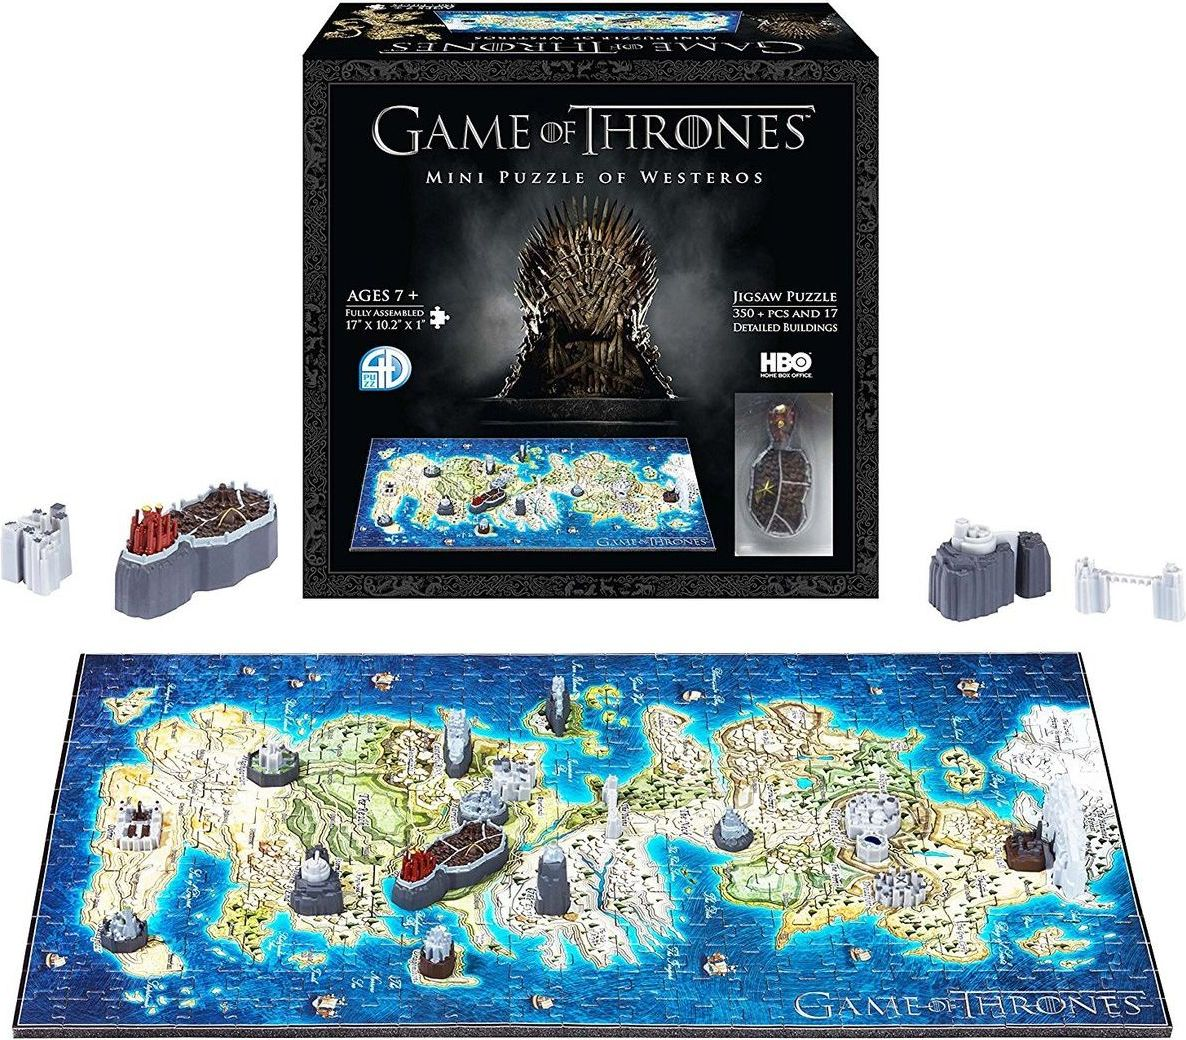 ADC Blackfire 4D Cityscape - Game Of Thrones / Mini Westeros 3D Puzzle - obrázek 1